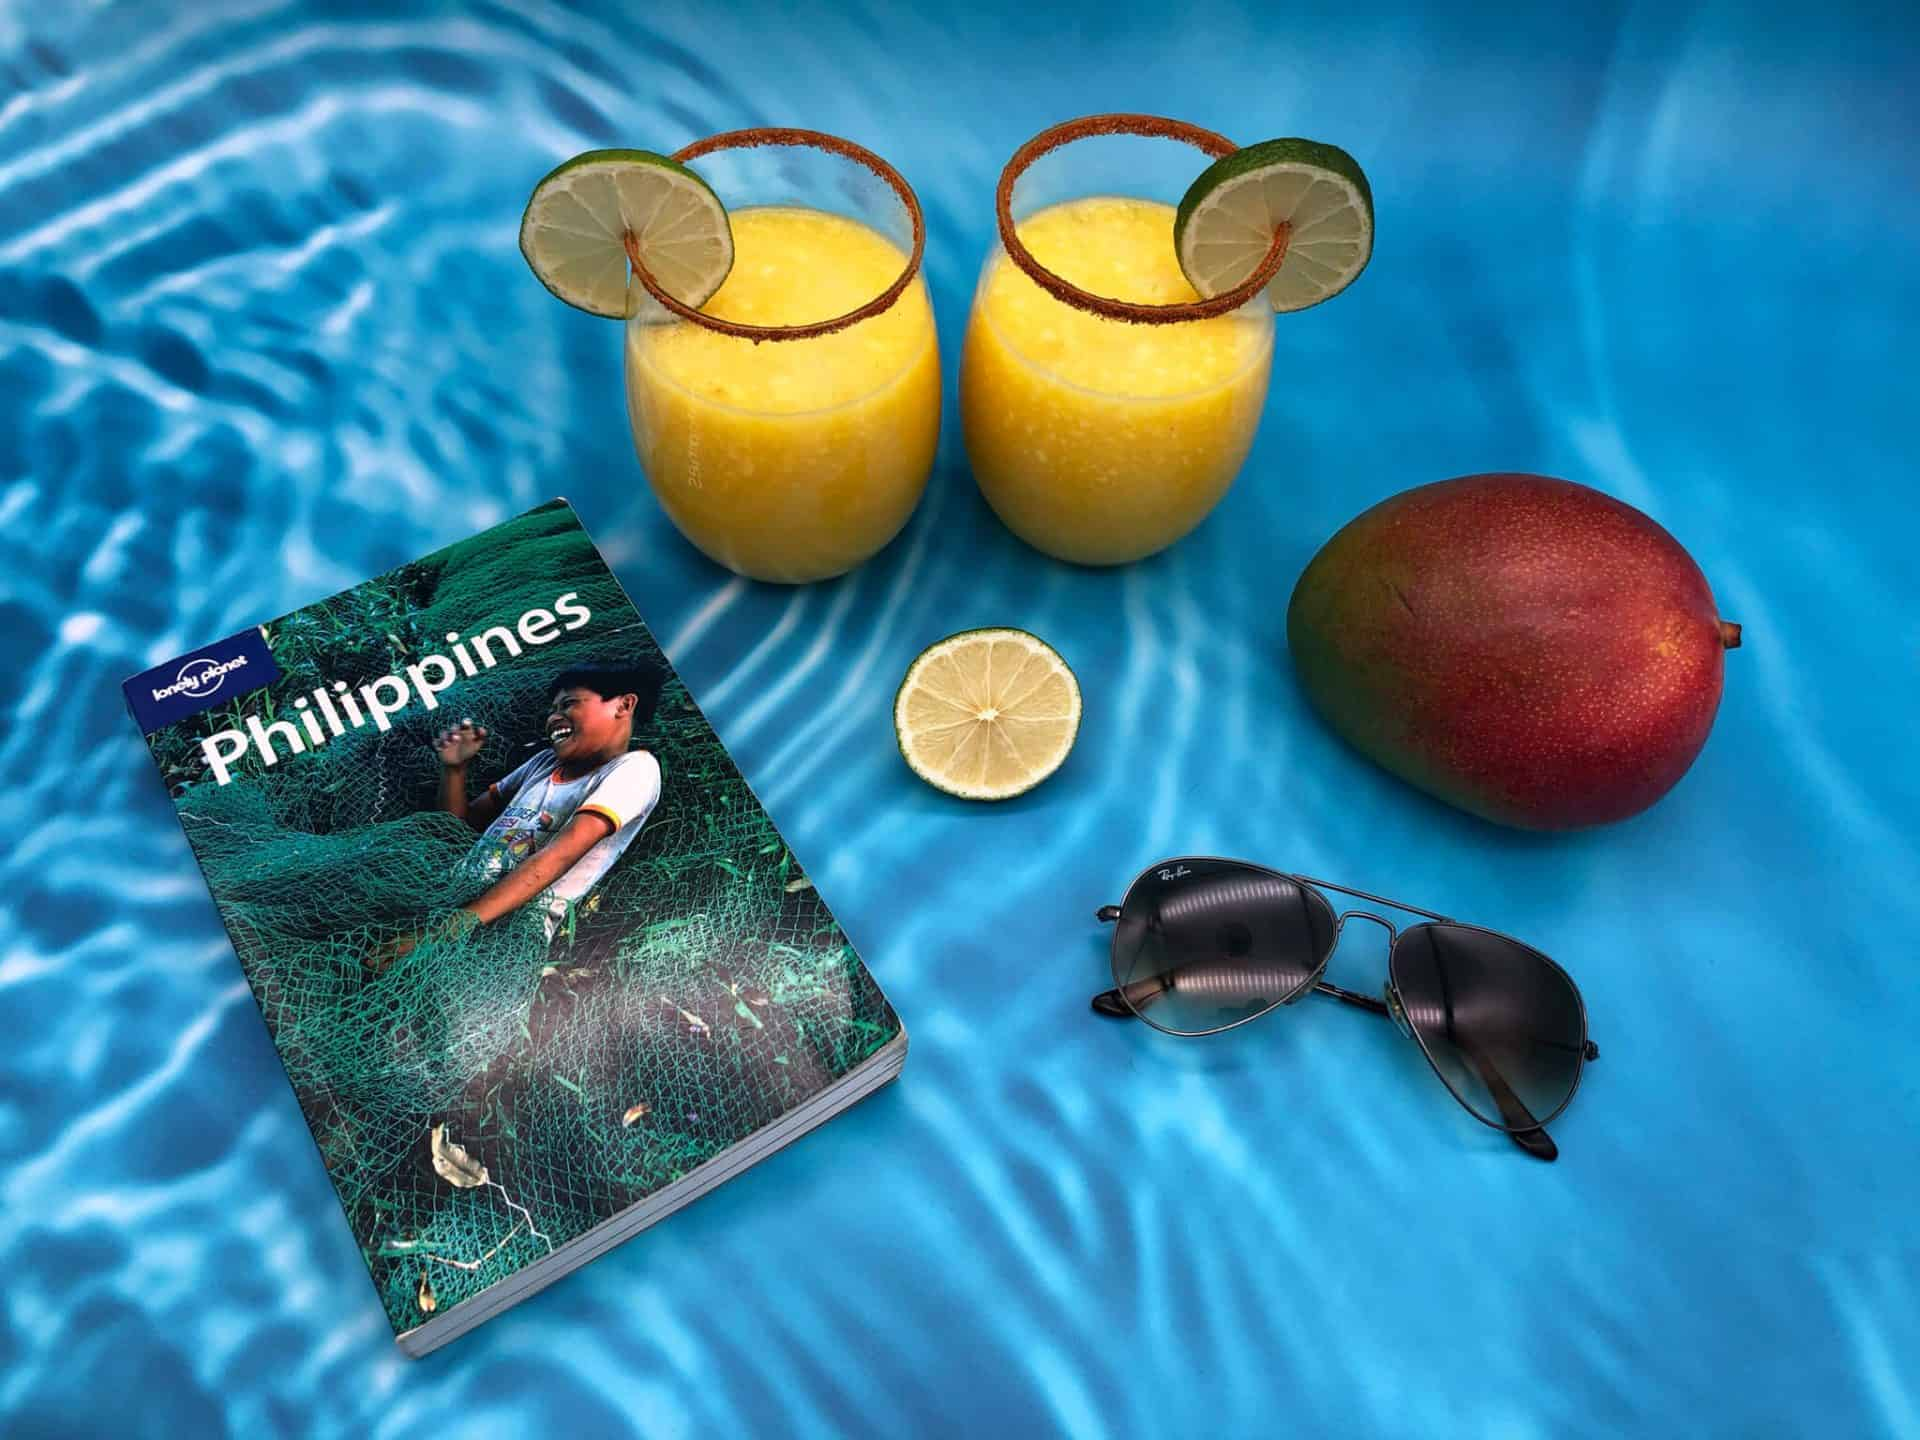 Holiday mocktails with mango, lime, sunglasses and travel book